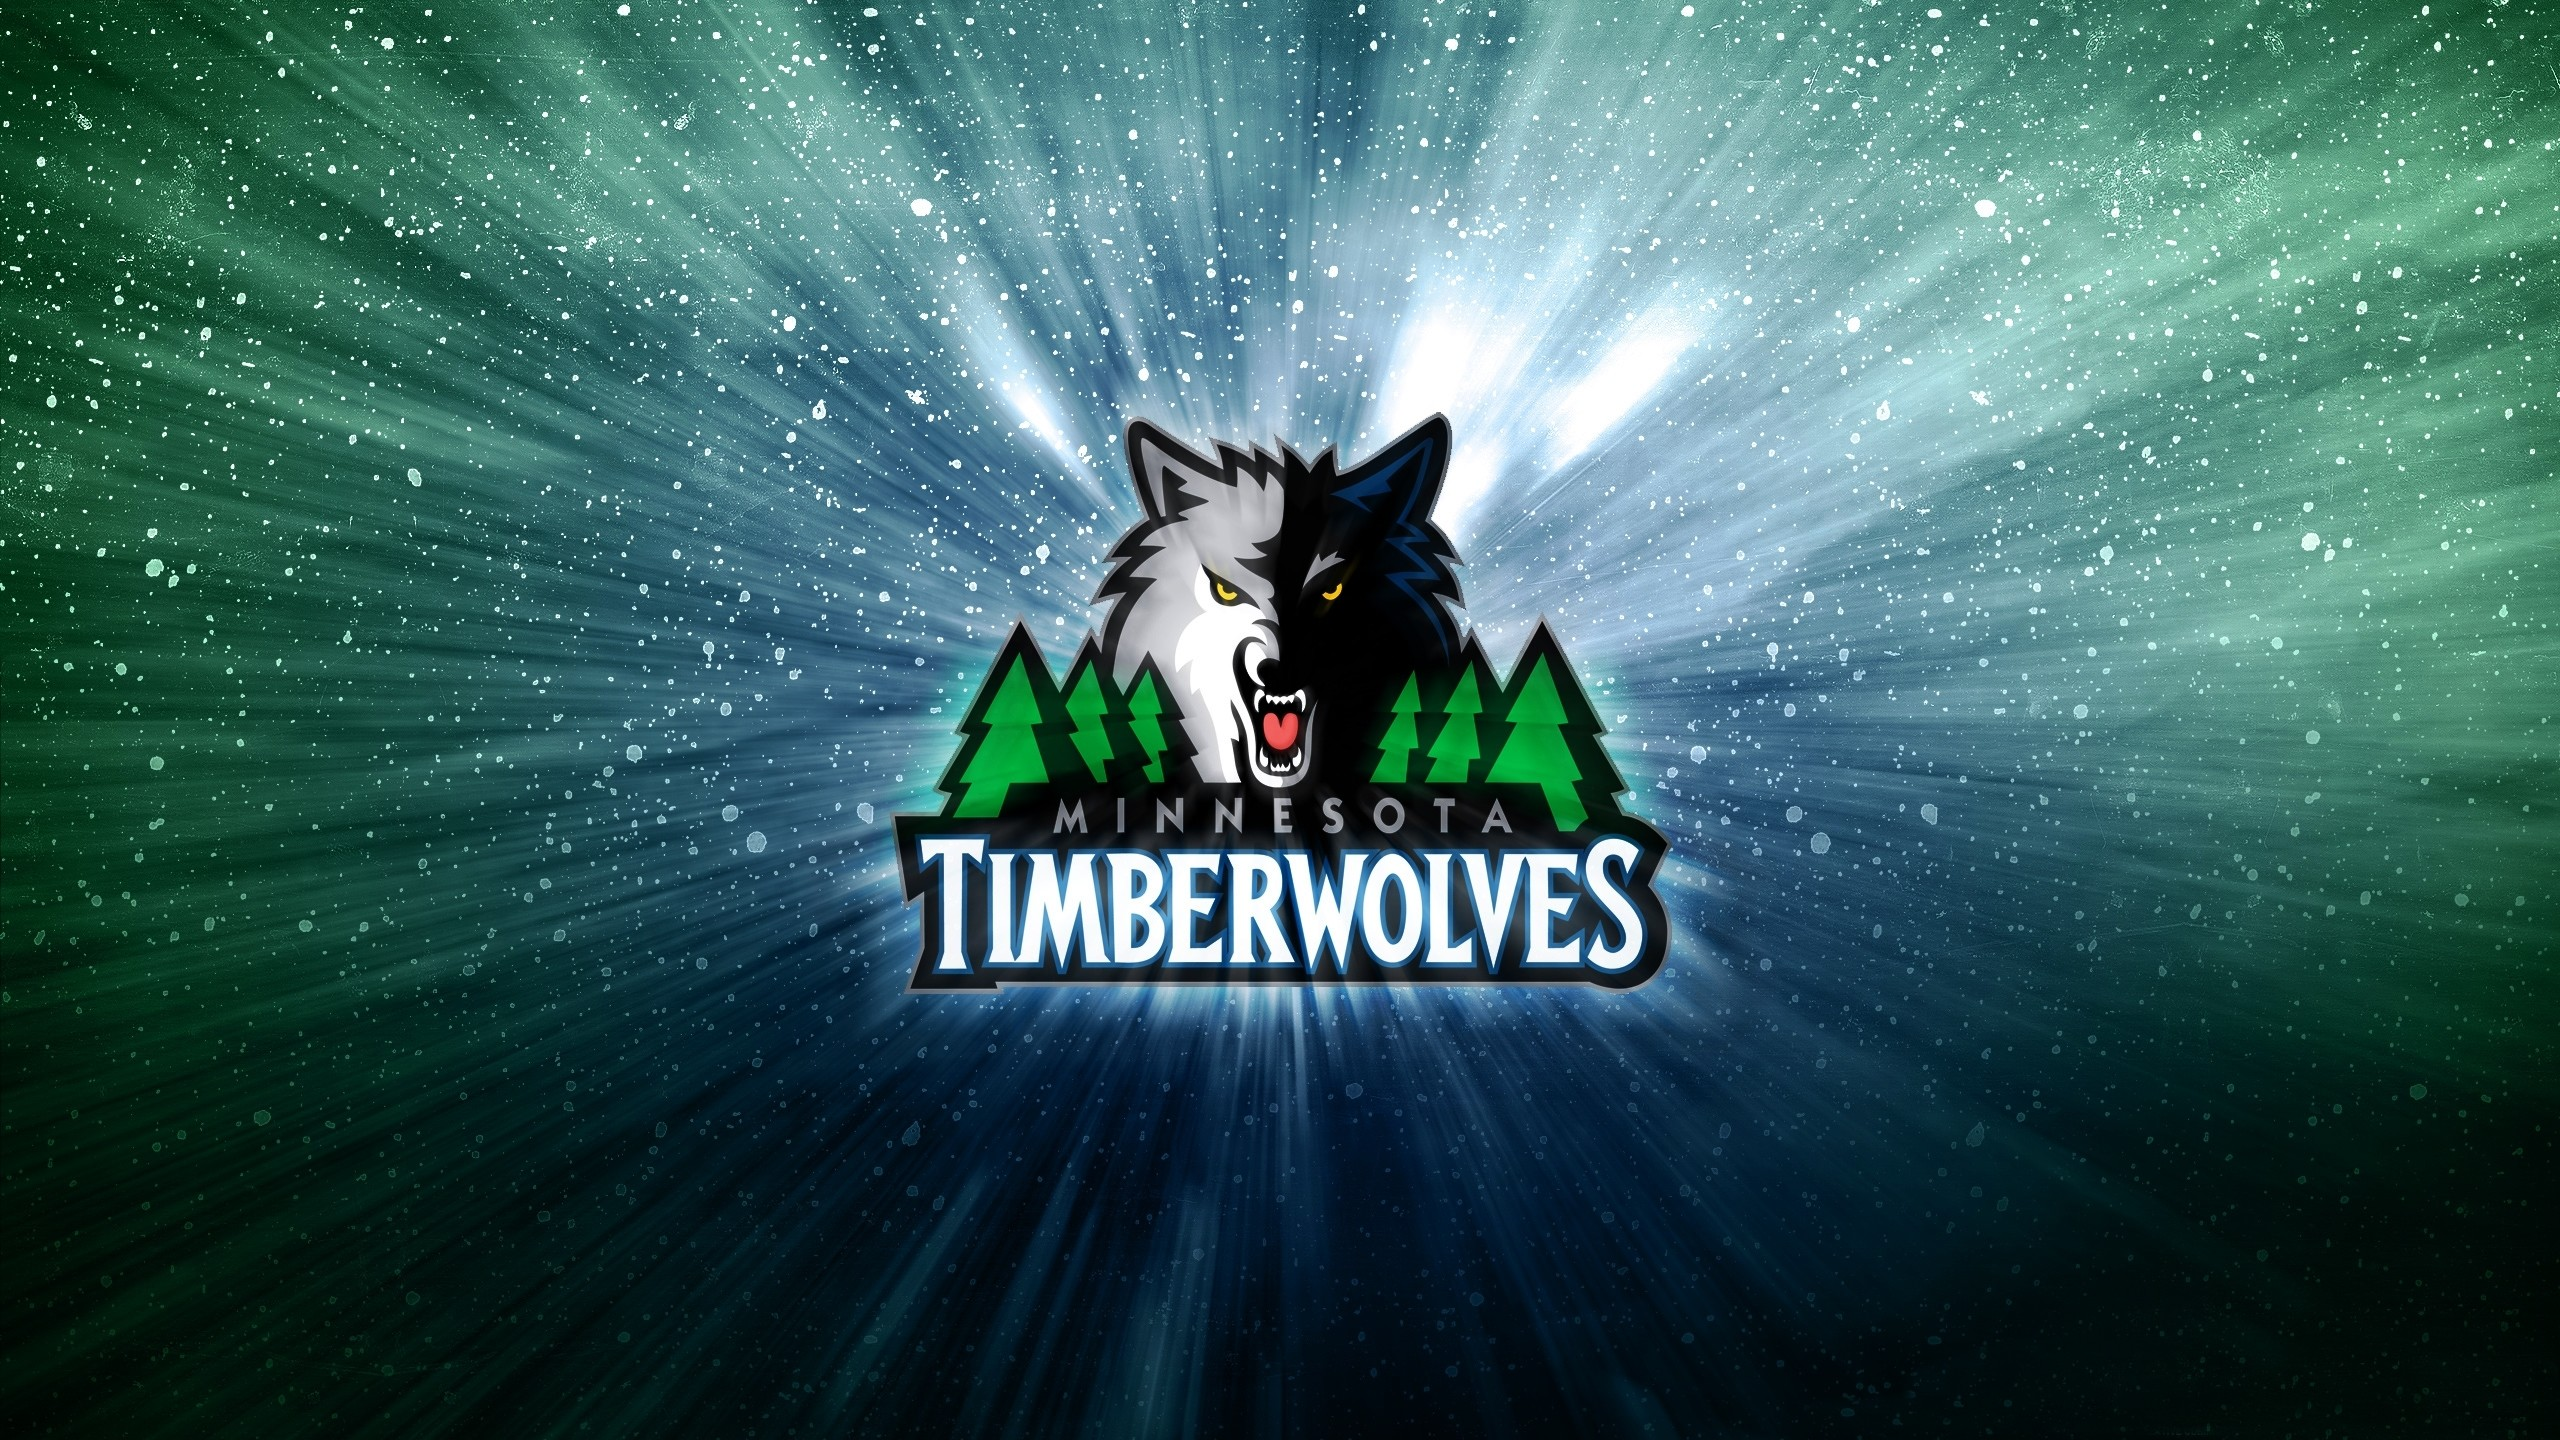 2560x1440 Newest Minnesota Timberwolves Photos and Pictures, Minnesota Timberwolves  High Resolution Wallpapers